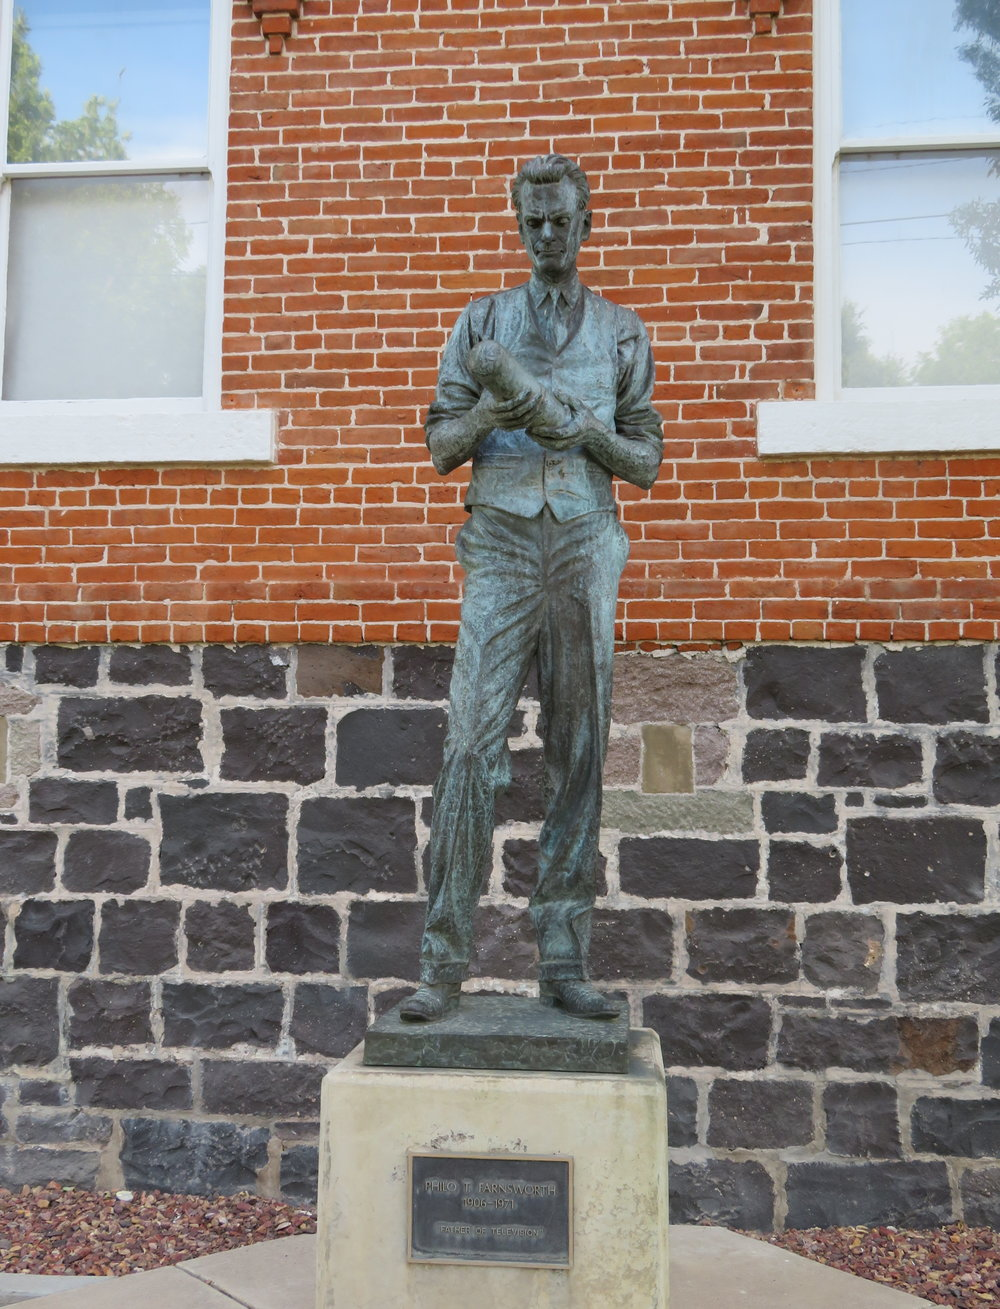 Philo T. Farnsworth statue, Beaver, UT - Father of Television